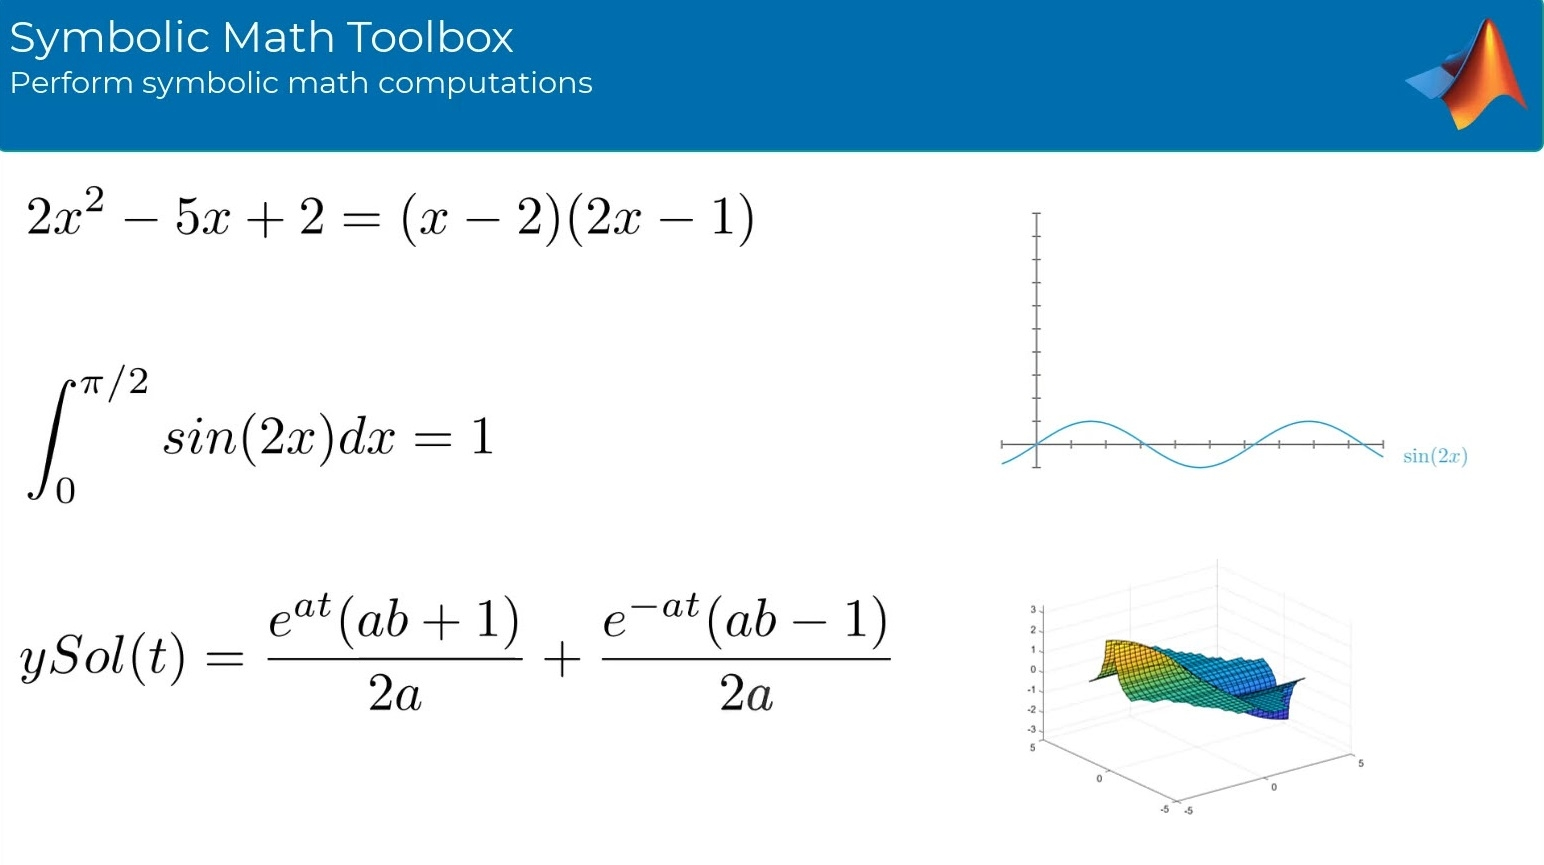 Perform symbolic math computations using Symbolic Math Toolbox™. The toolbox provides functions for solving, plotting, and manipulating symbolic math equations.